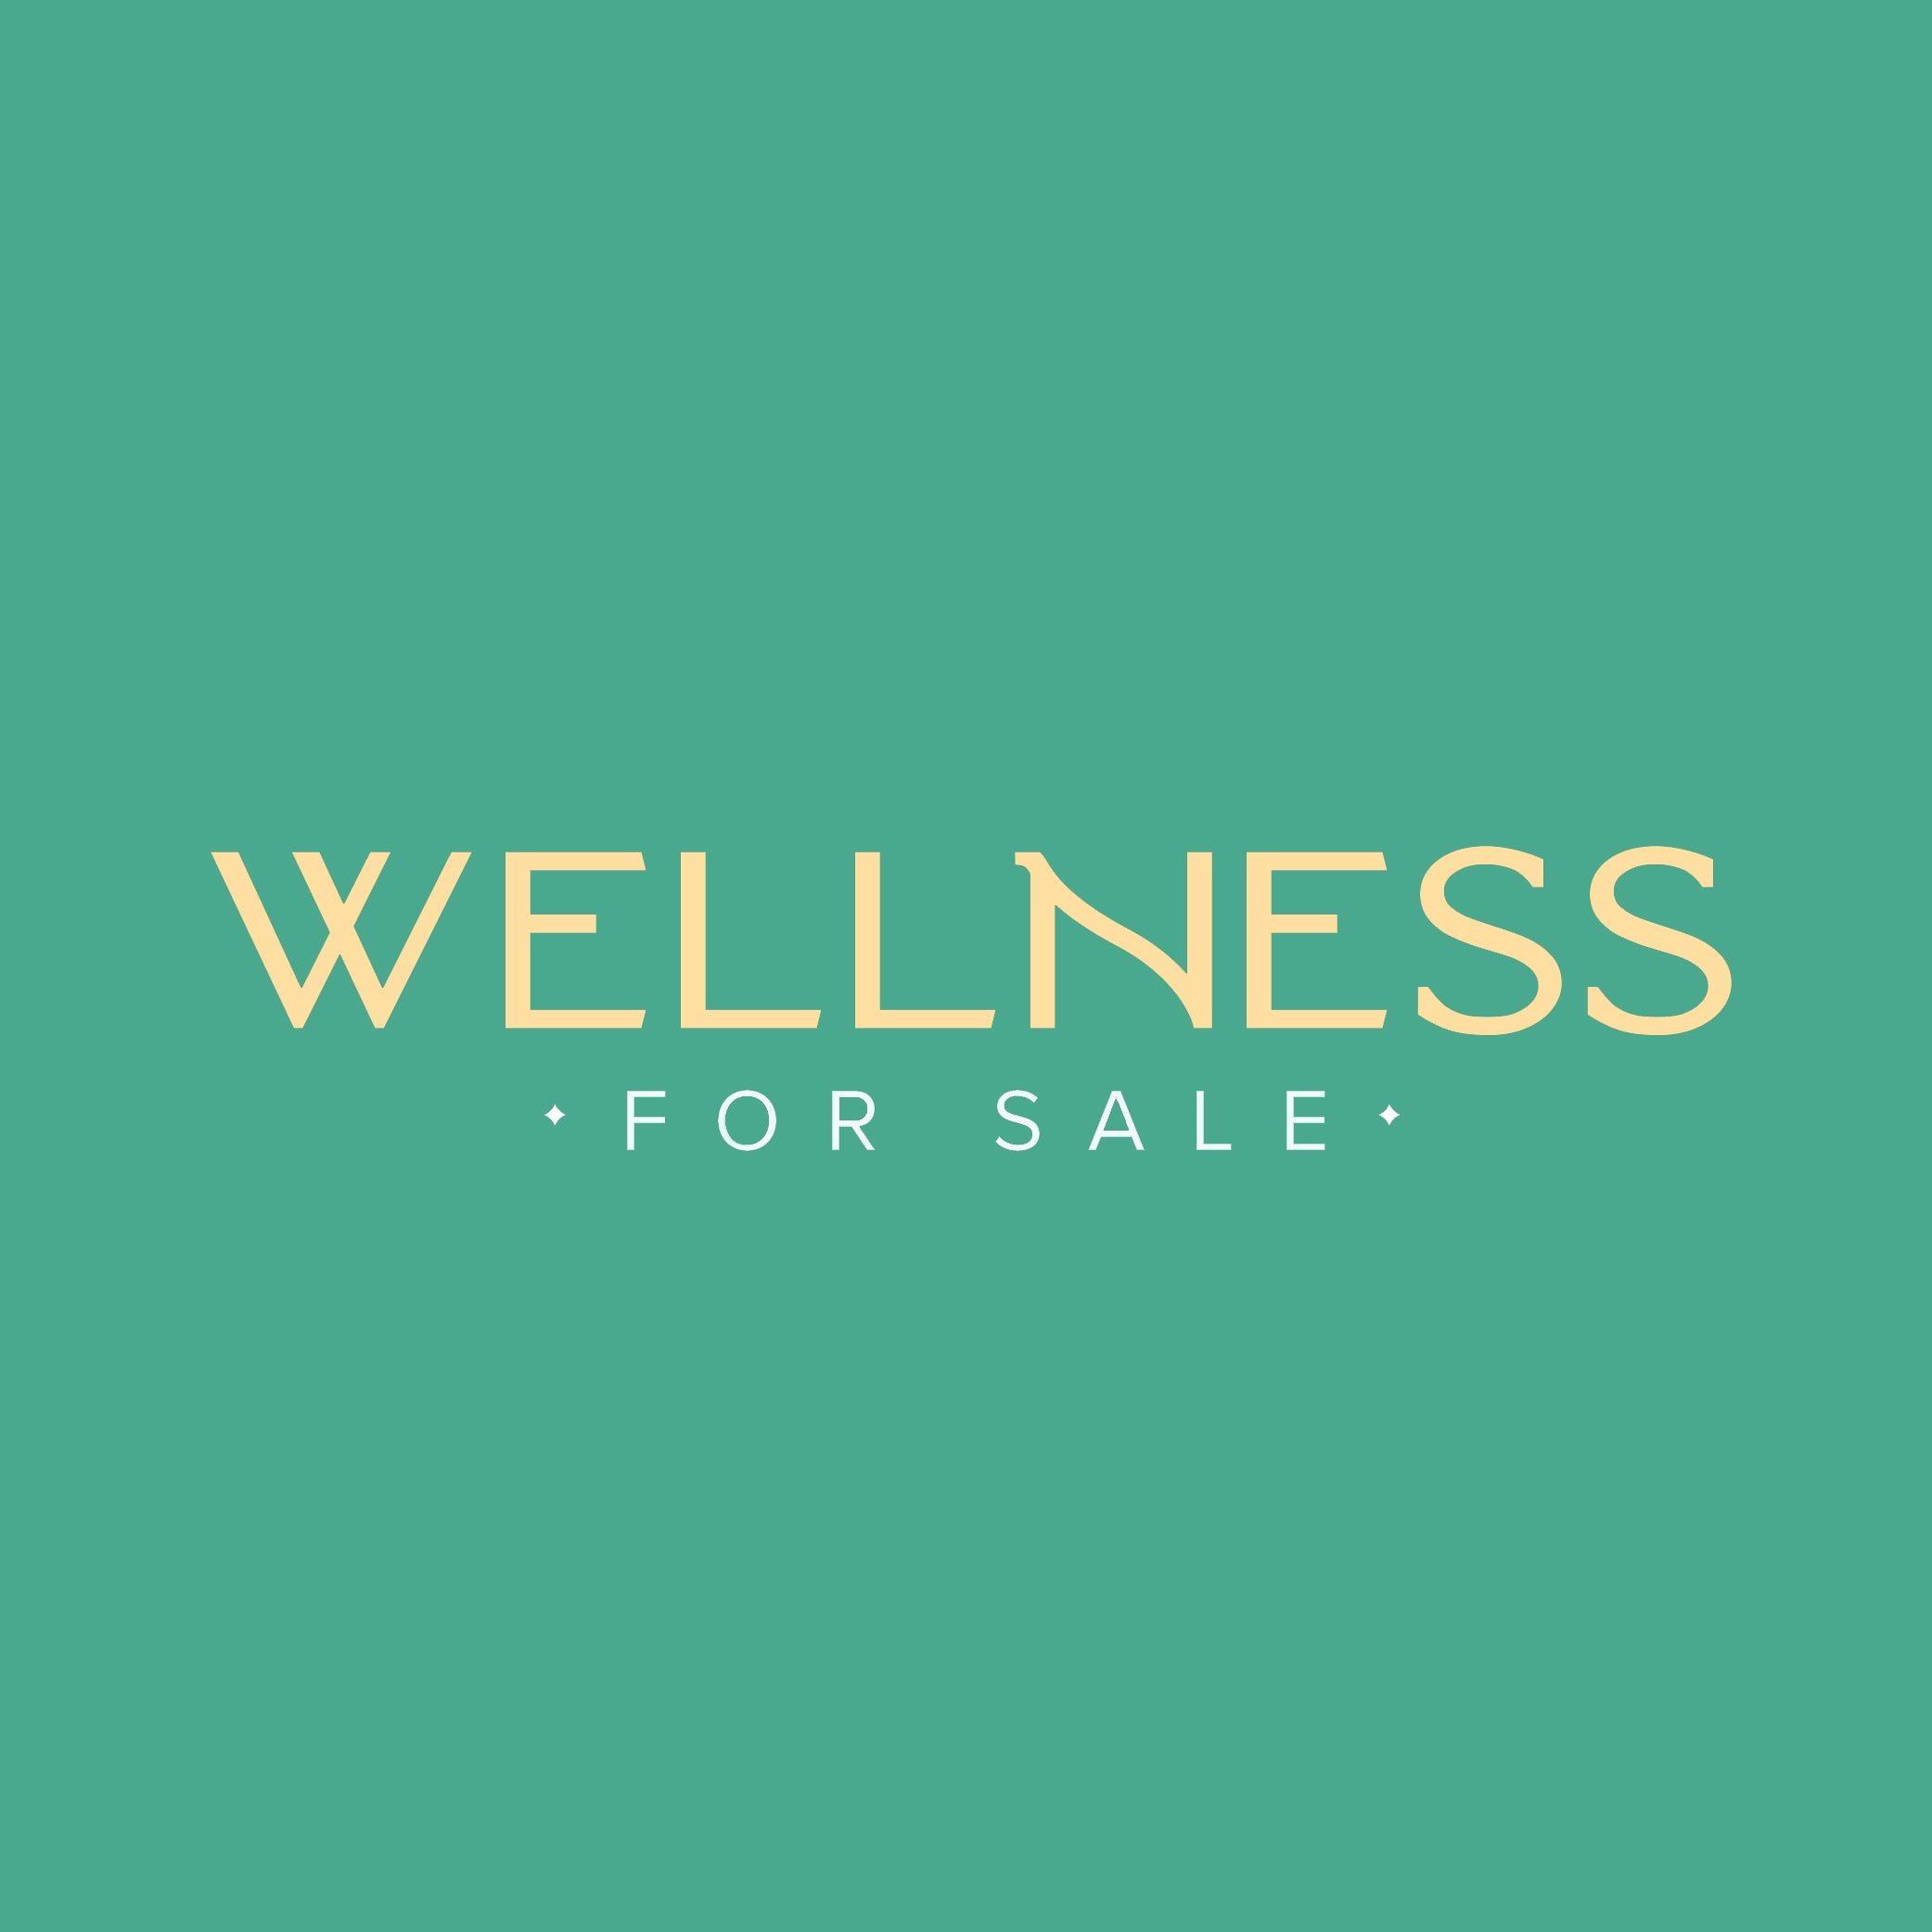 wellness distribution makes it easier than ever to get into the health and wellness industry